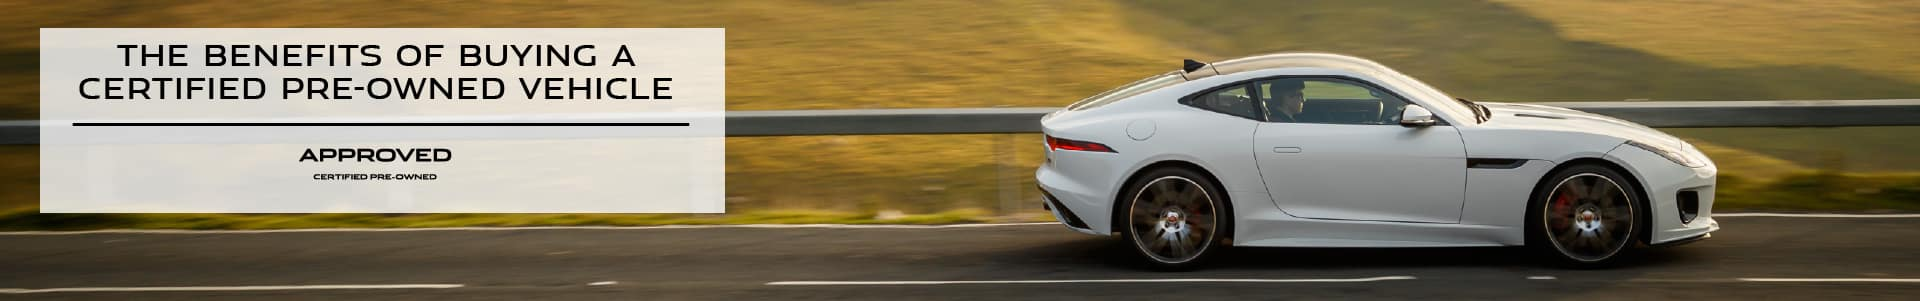 THE BENEFITS OF BUYING A CERTIFIED PRE-OWNED VEHICLE. WHITE JAGUAR F-TYPE COUPE DRIVING DOWN ROAD IN COUNTRYSIDE.